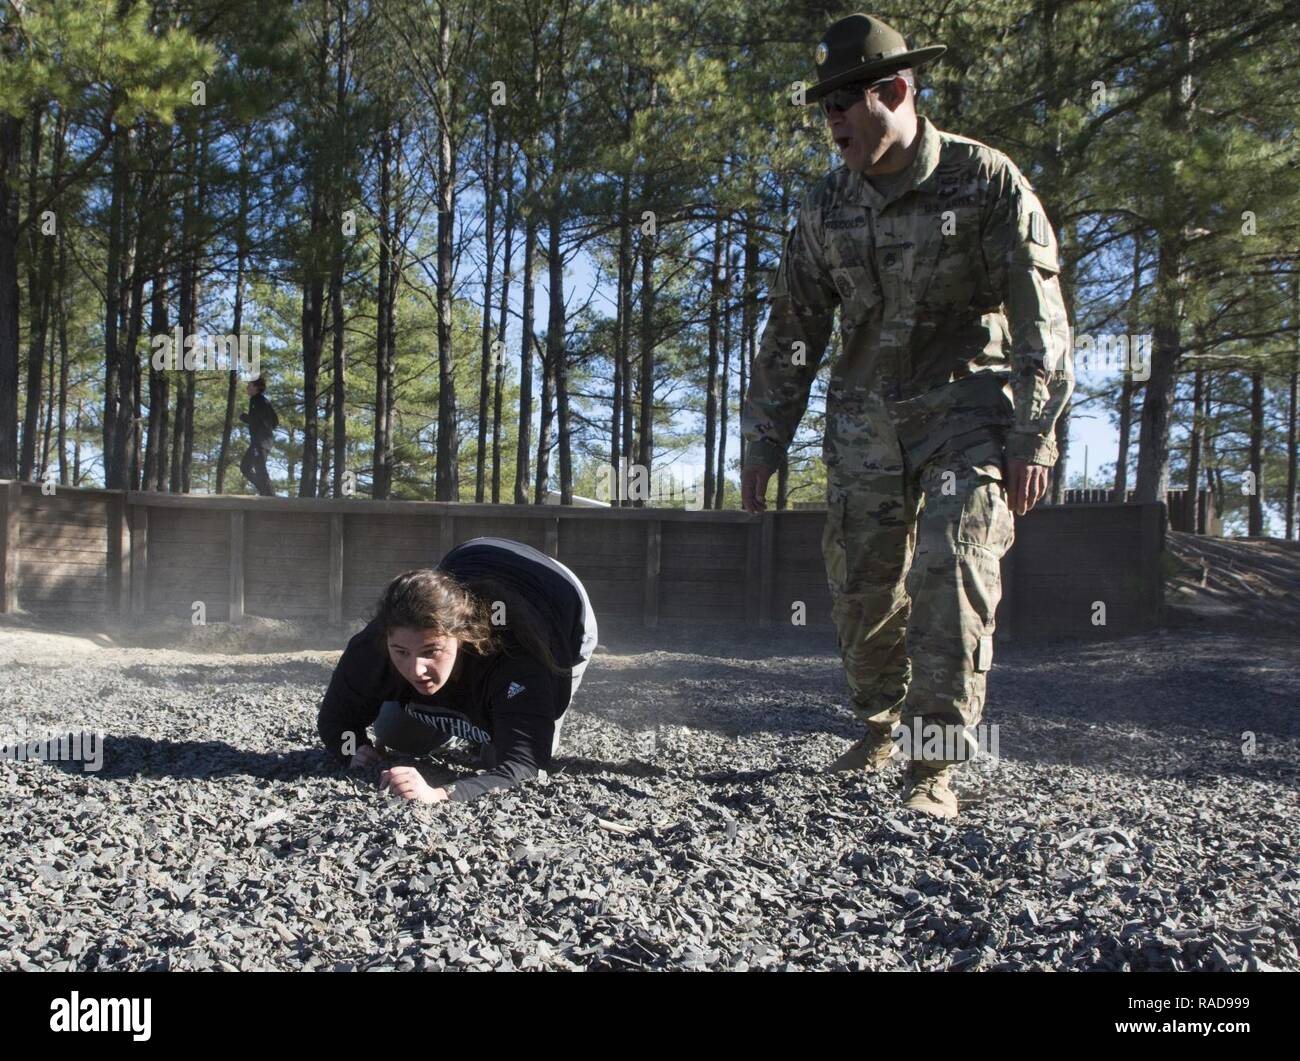 Alaina Girani, a junior goalie, and Wirtz, Va. native, on the Winthrop University Women's Lacrosse Team, is motivated to crawl to the end of Fit to Win 2 by Staff Sgt. Eric M. Driscoll, a drill sergeant with Alpha Company, 1st Battalion, 13th Infantry Regiment, during a team building exercise on Fort Jackson Jan. 28. - Stock Image